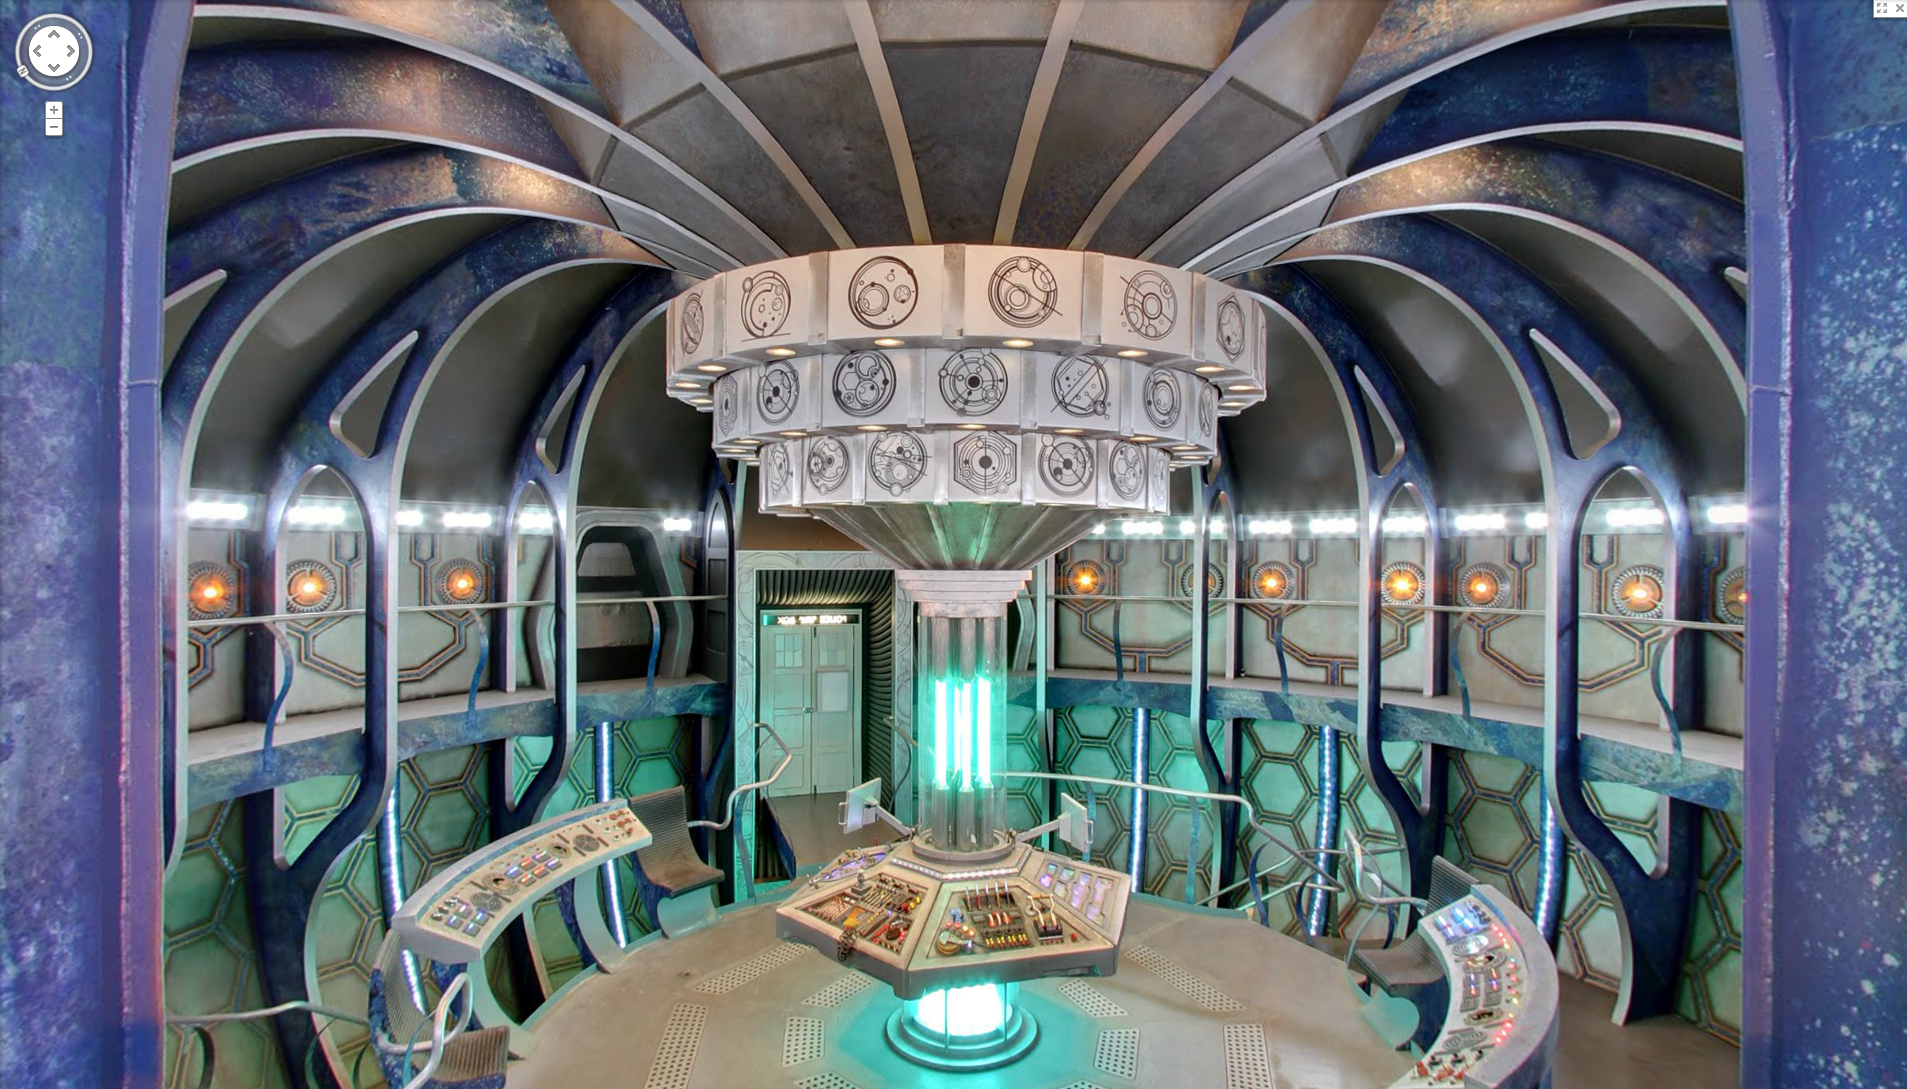 Interior Of The TARDIS U2013 Google Maps